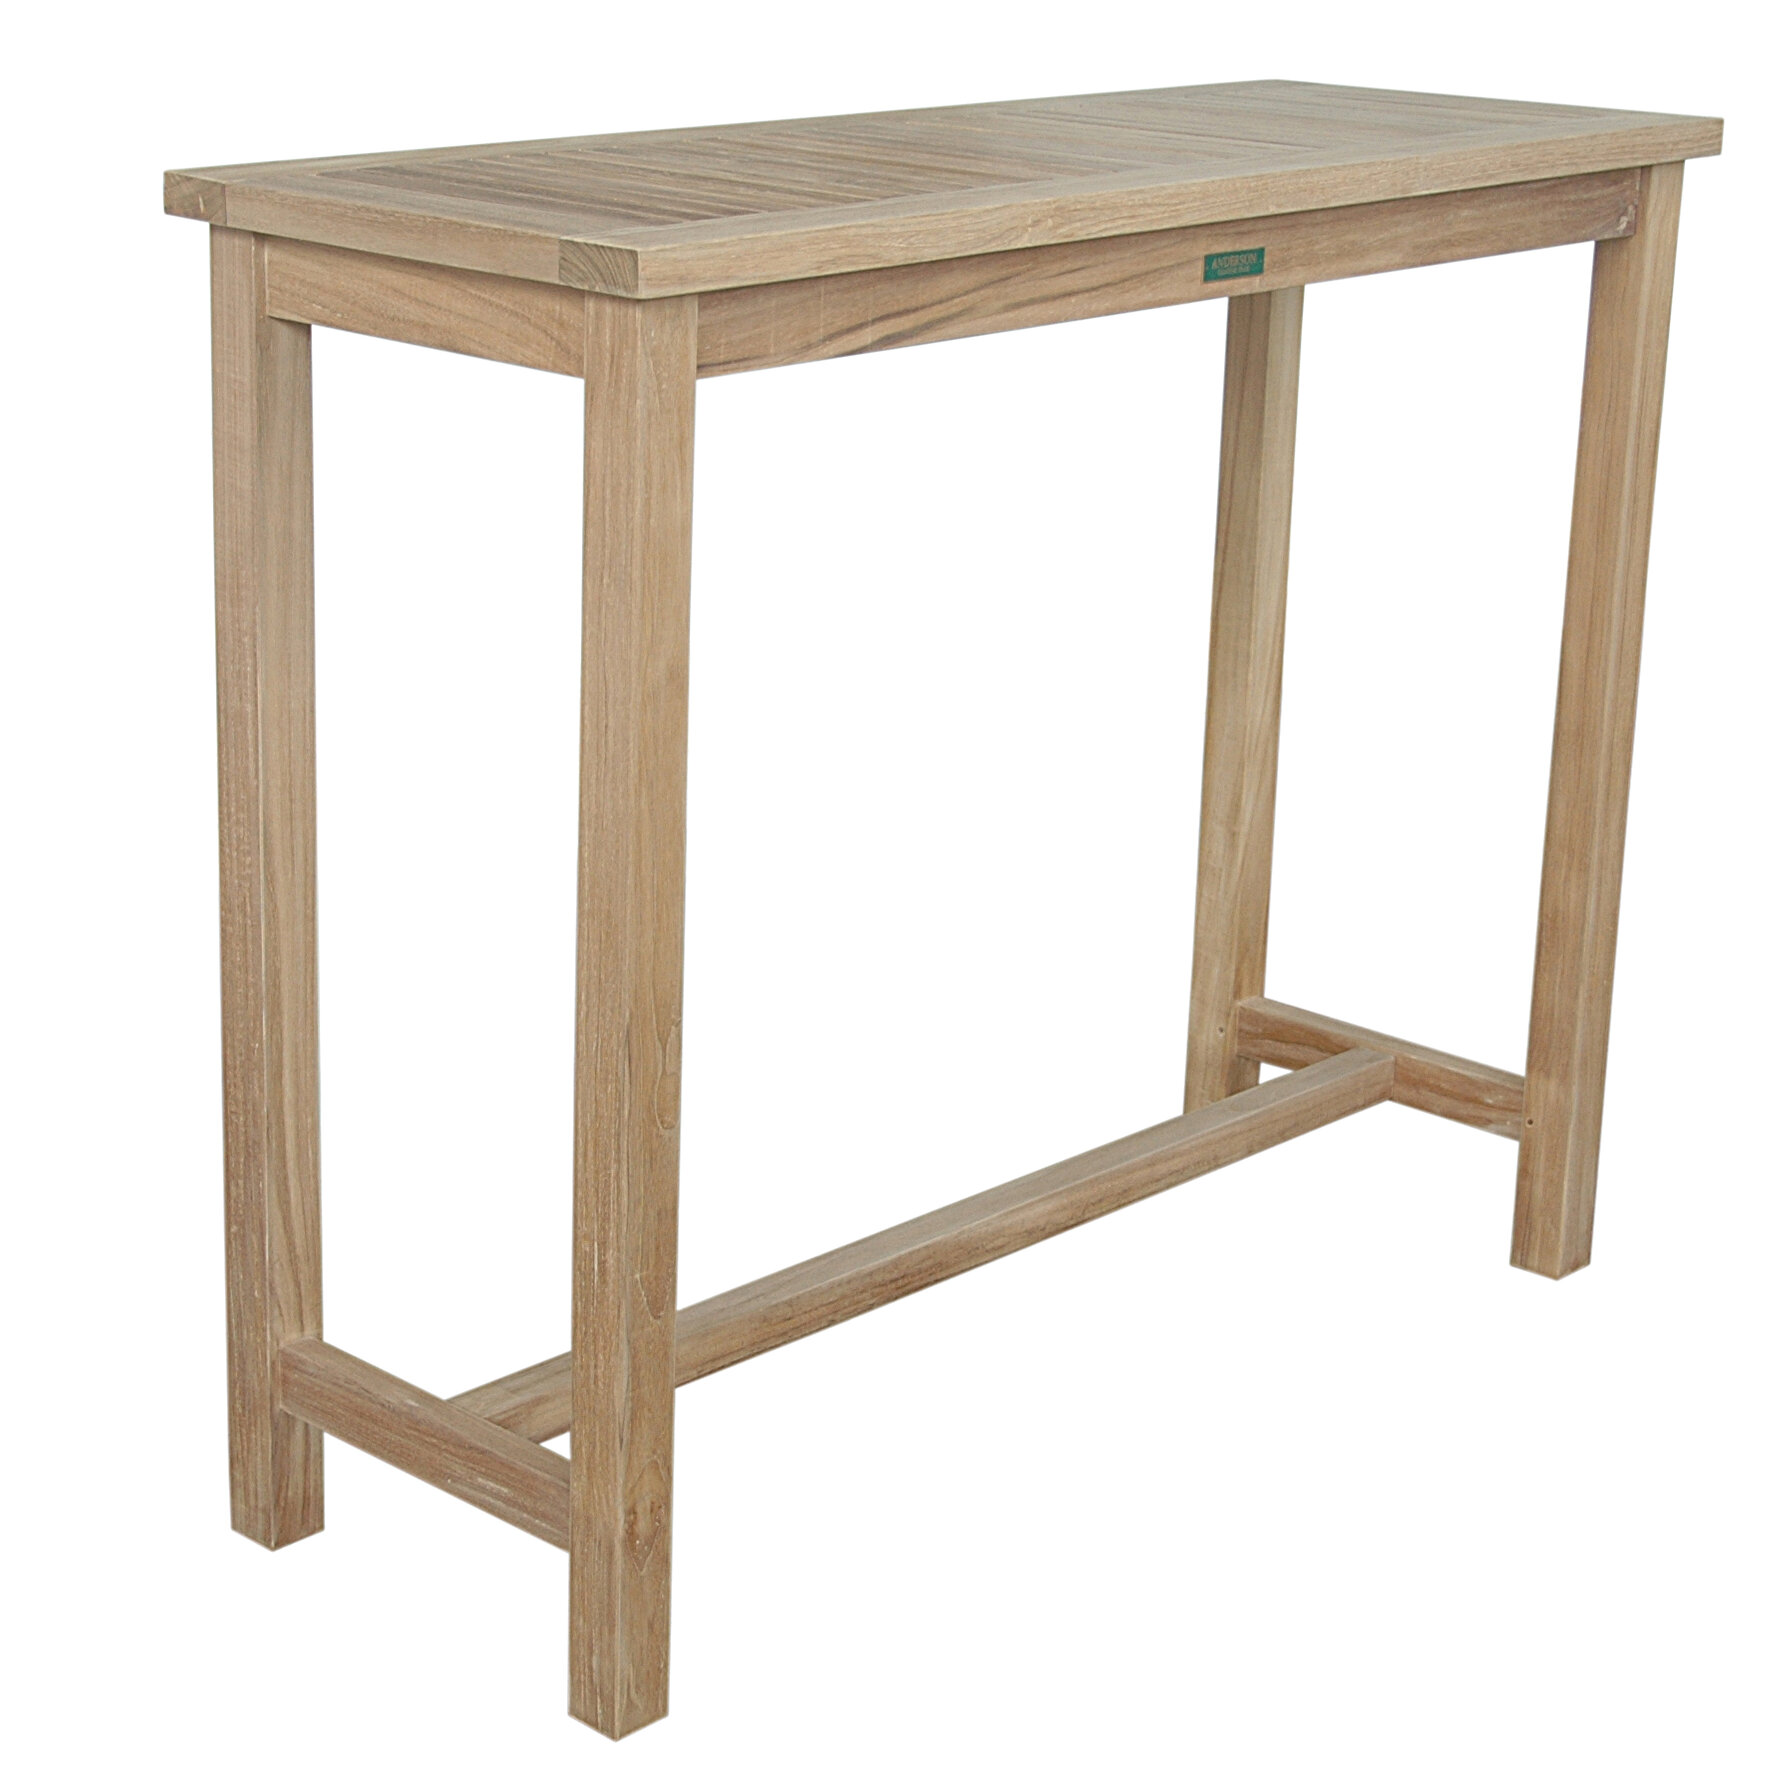 Anderson Teak Windsor Teak Bar Table | Wayfair